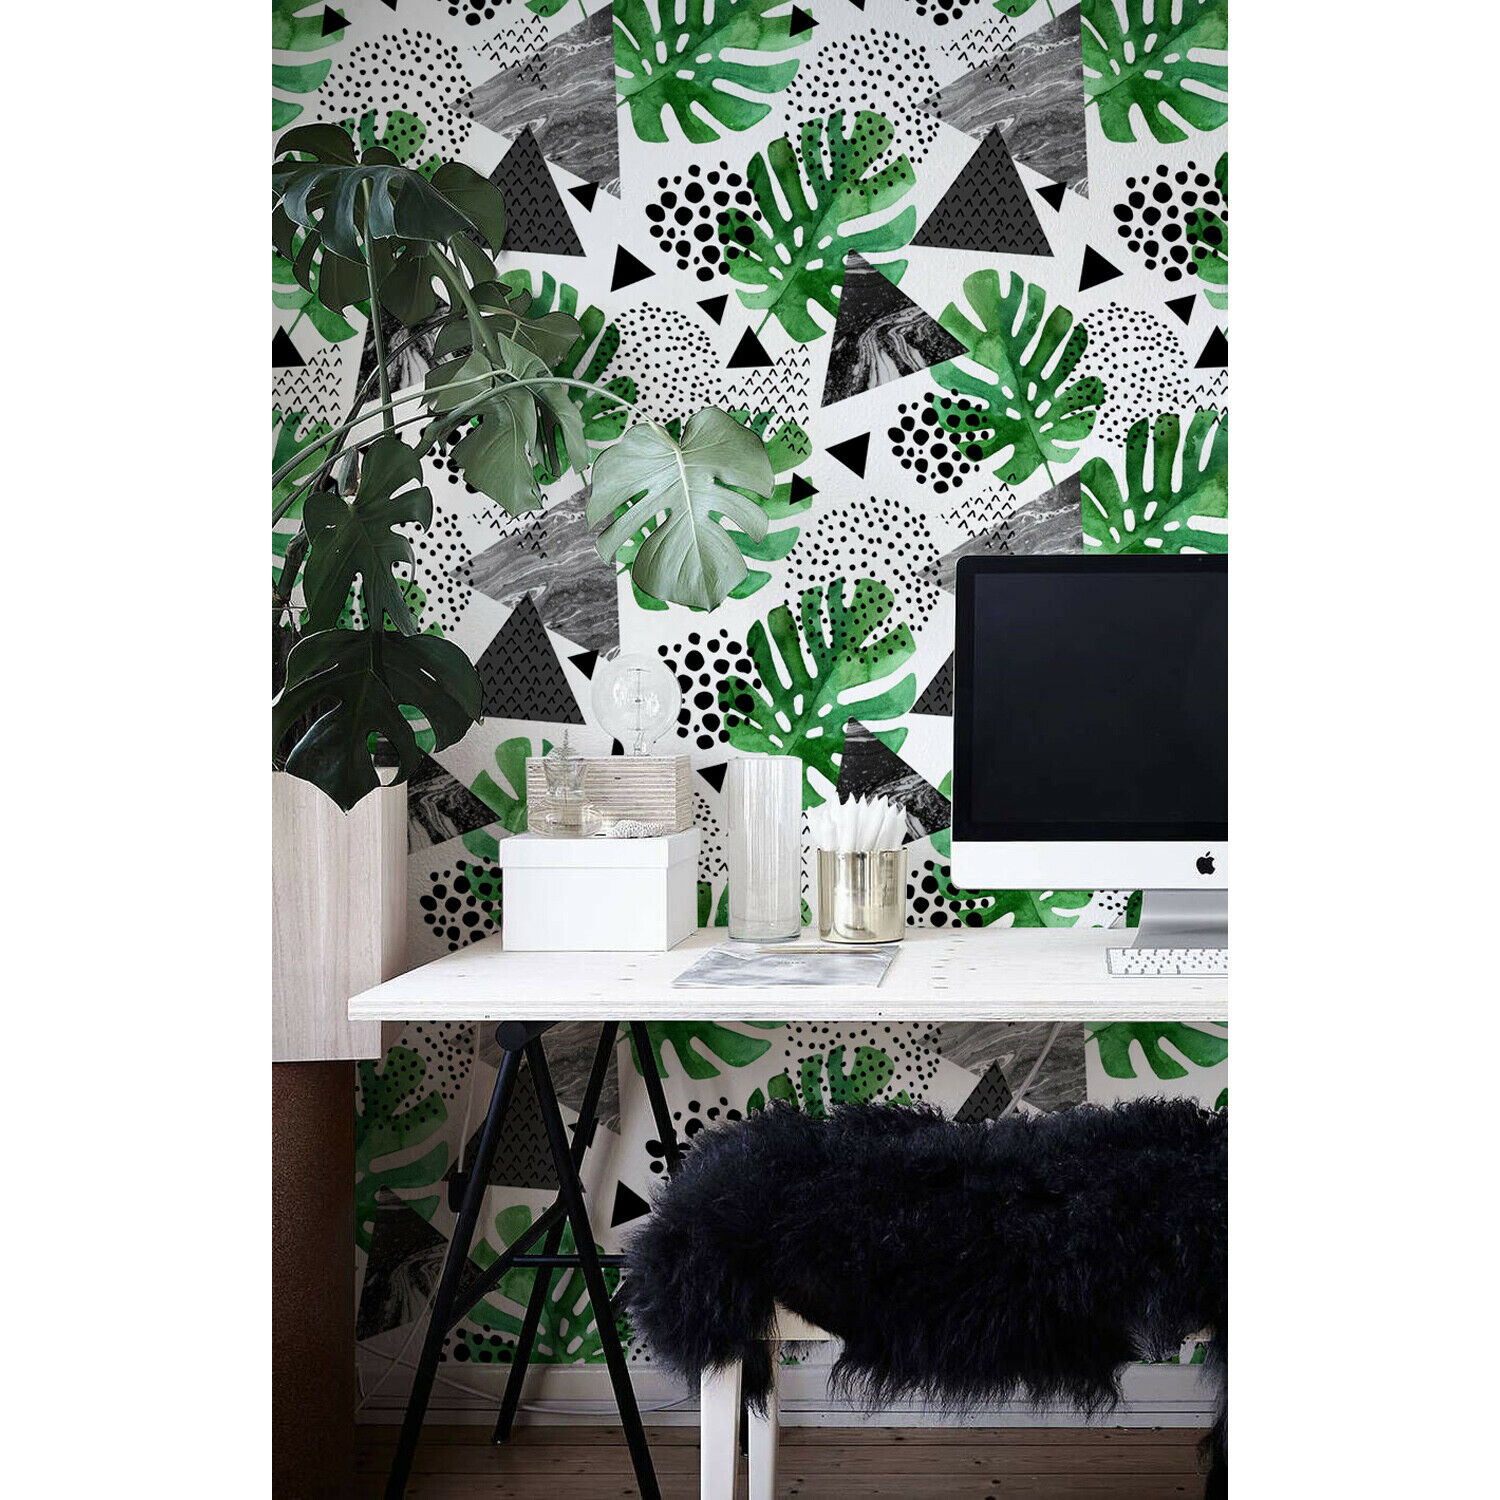 Abstract Jungle Non-woven wallpaper Geometric Tropical Illustration Wall Mural